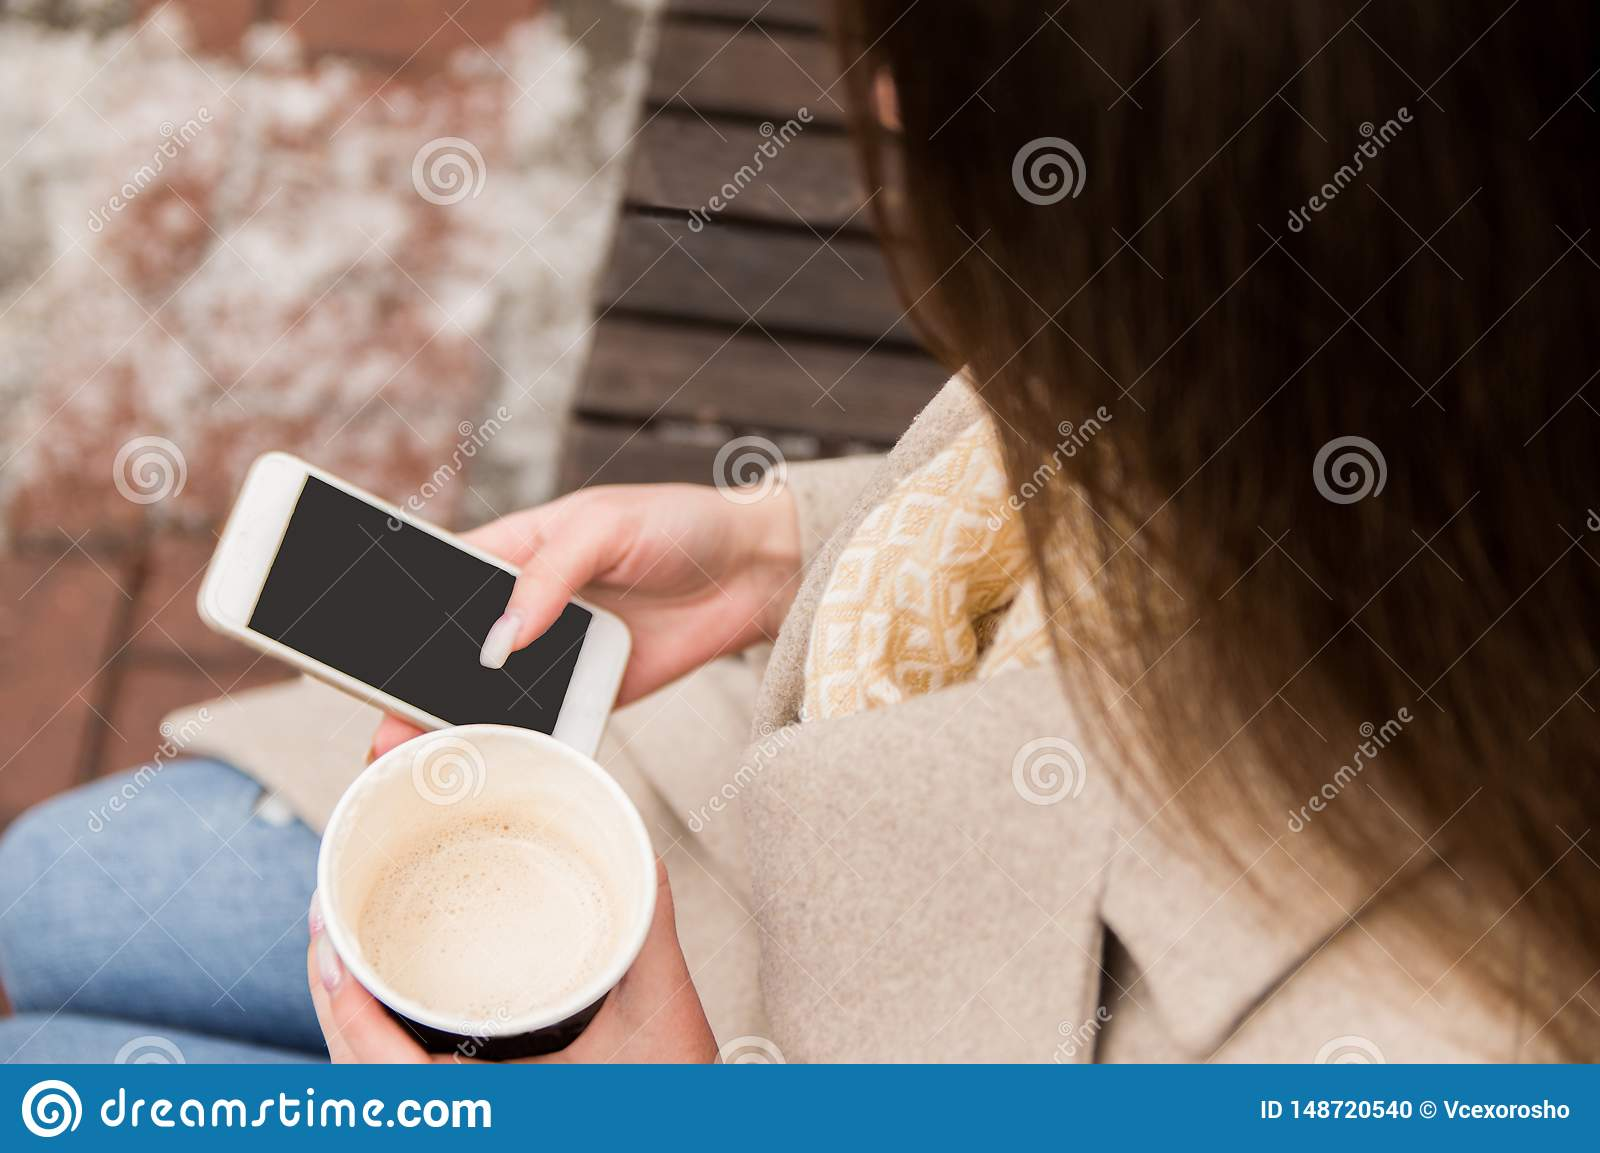 Girl sitting on the street with a phone and coffee in her hands, looking into the phone, waiting for a call, it is winter outside